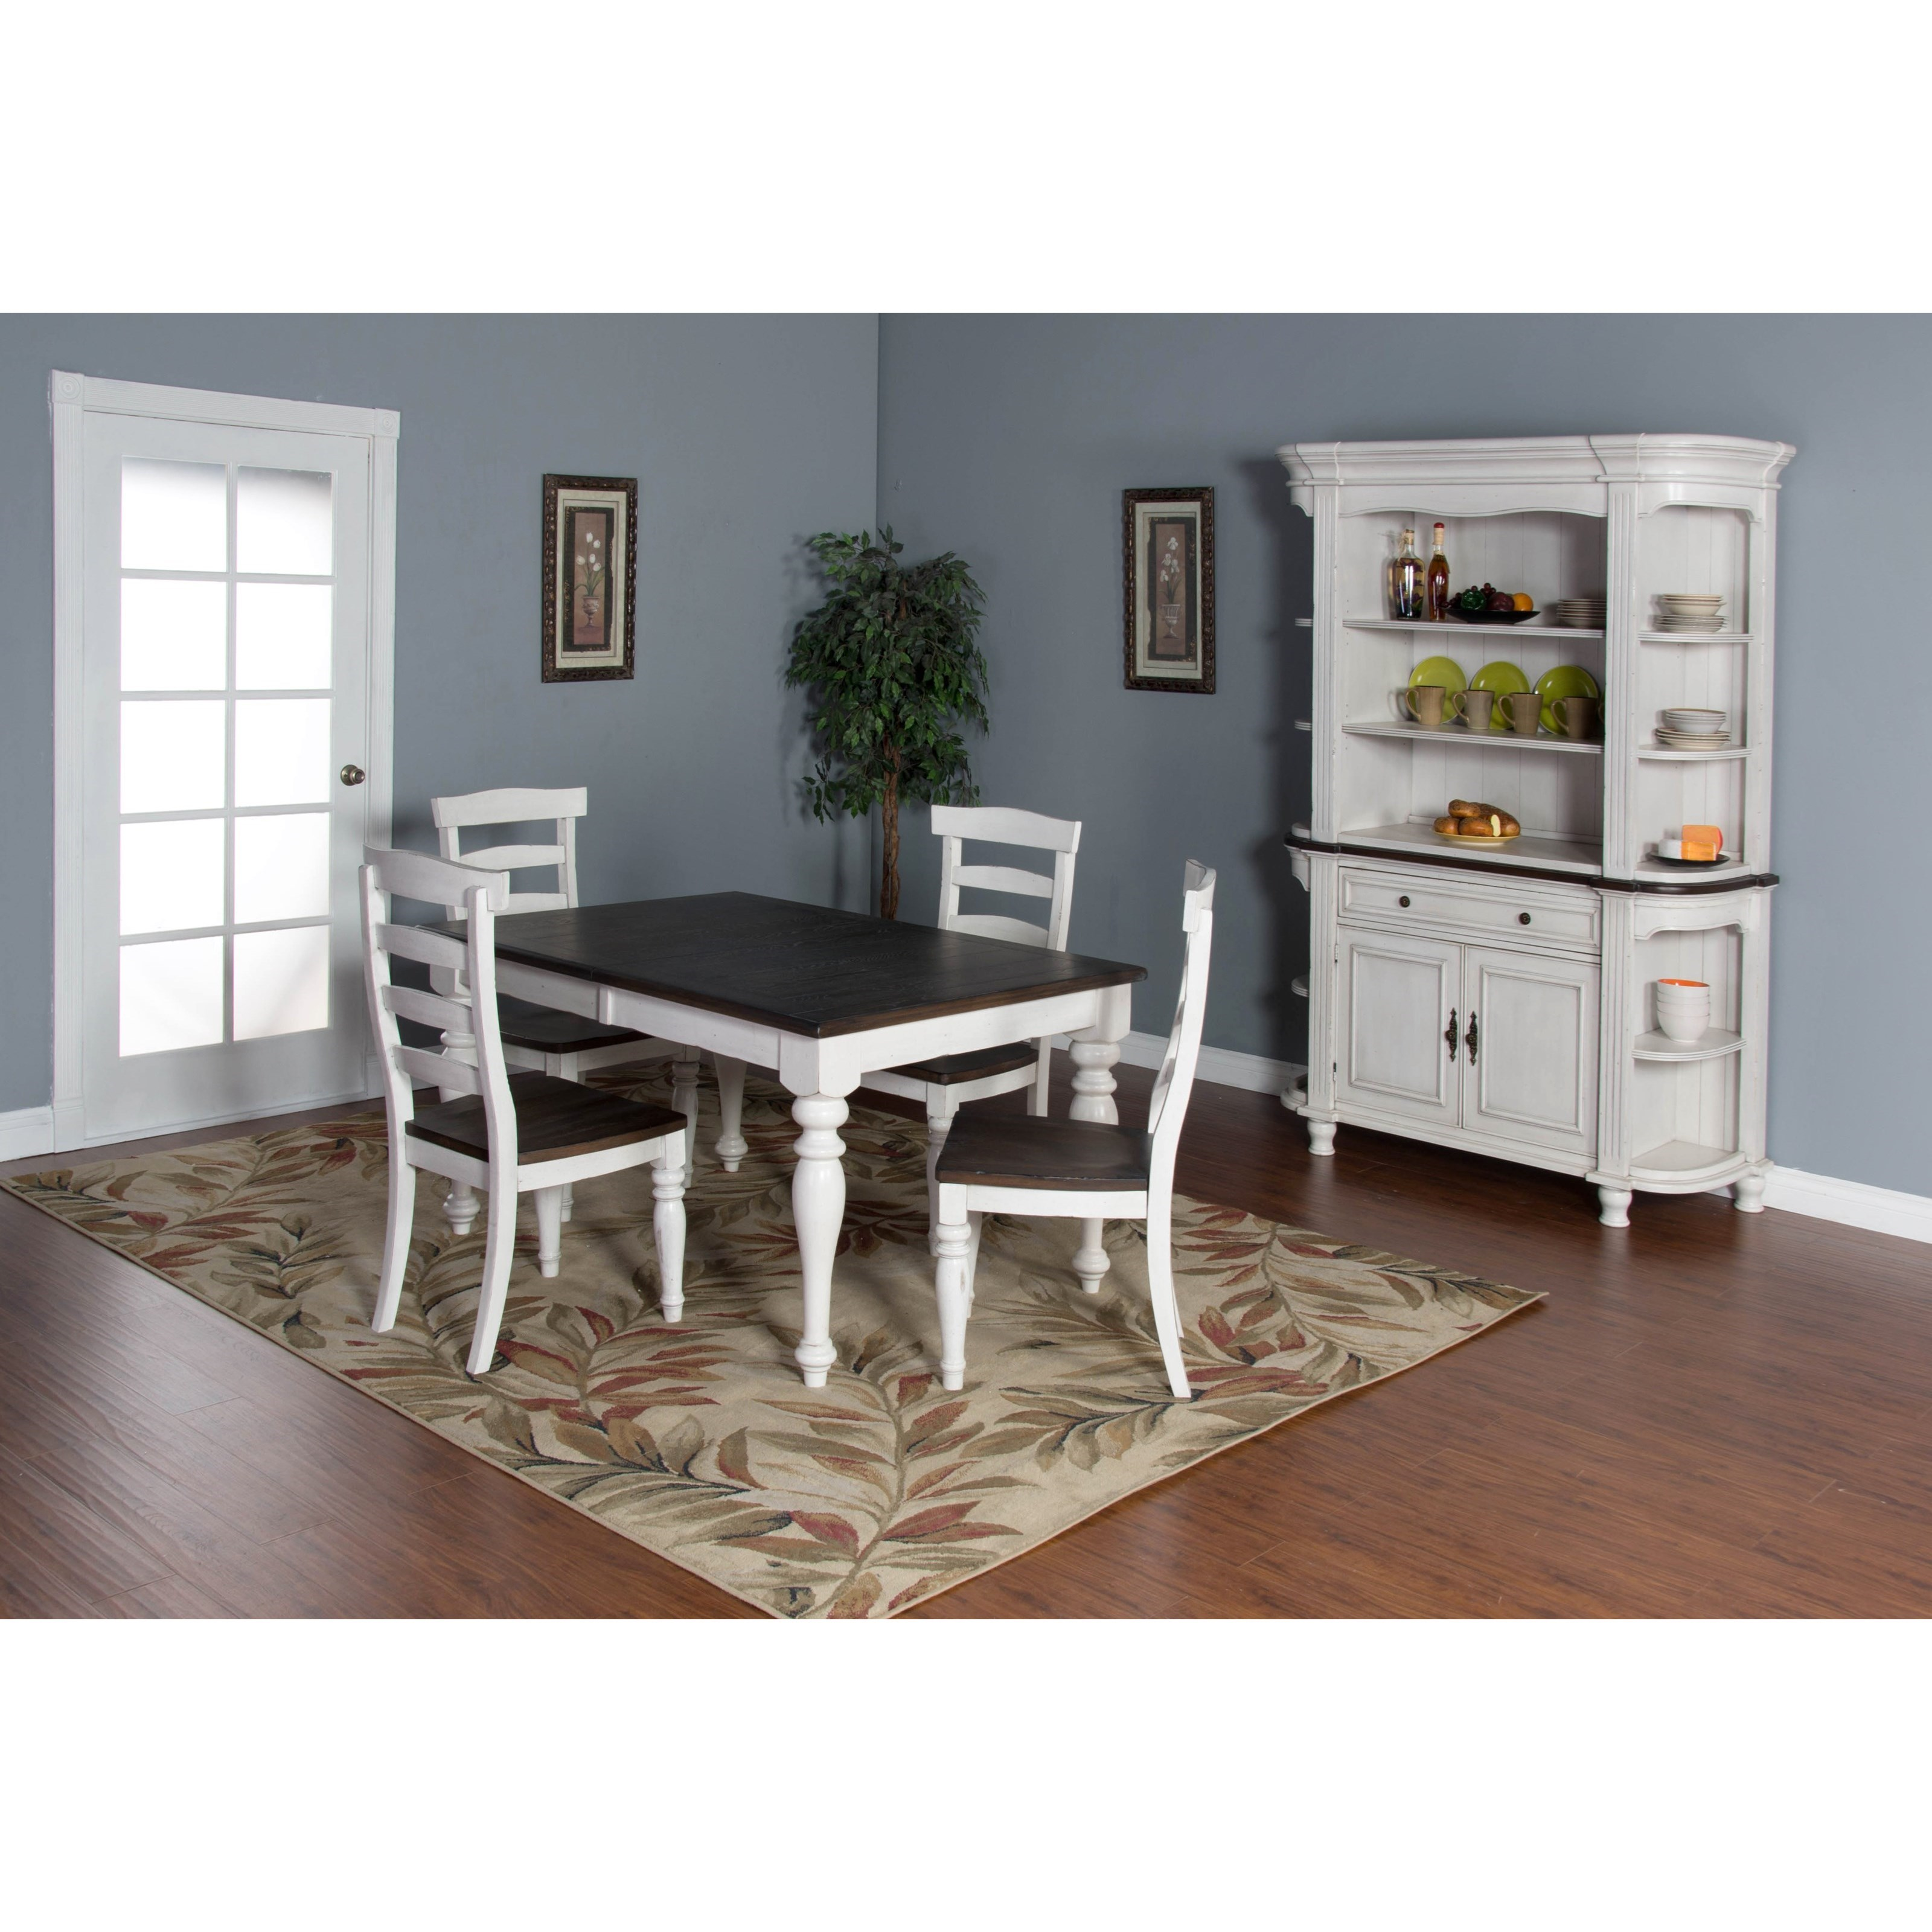 server hutches white picture trend room buffets inspiring buffet dining inspirierend small cabinet wine files kitchen of for hutch country design and styles shocking